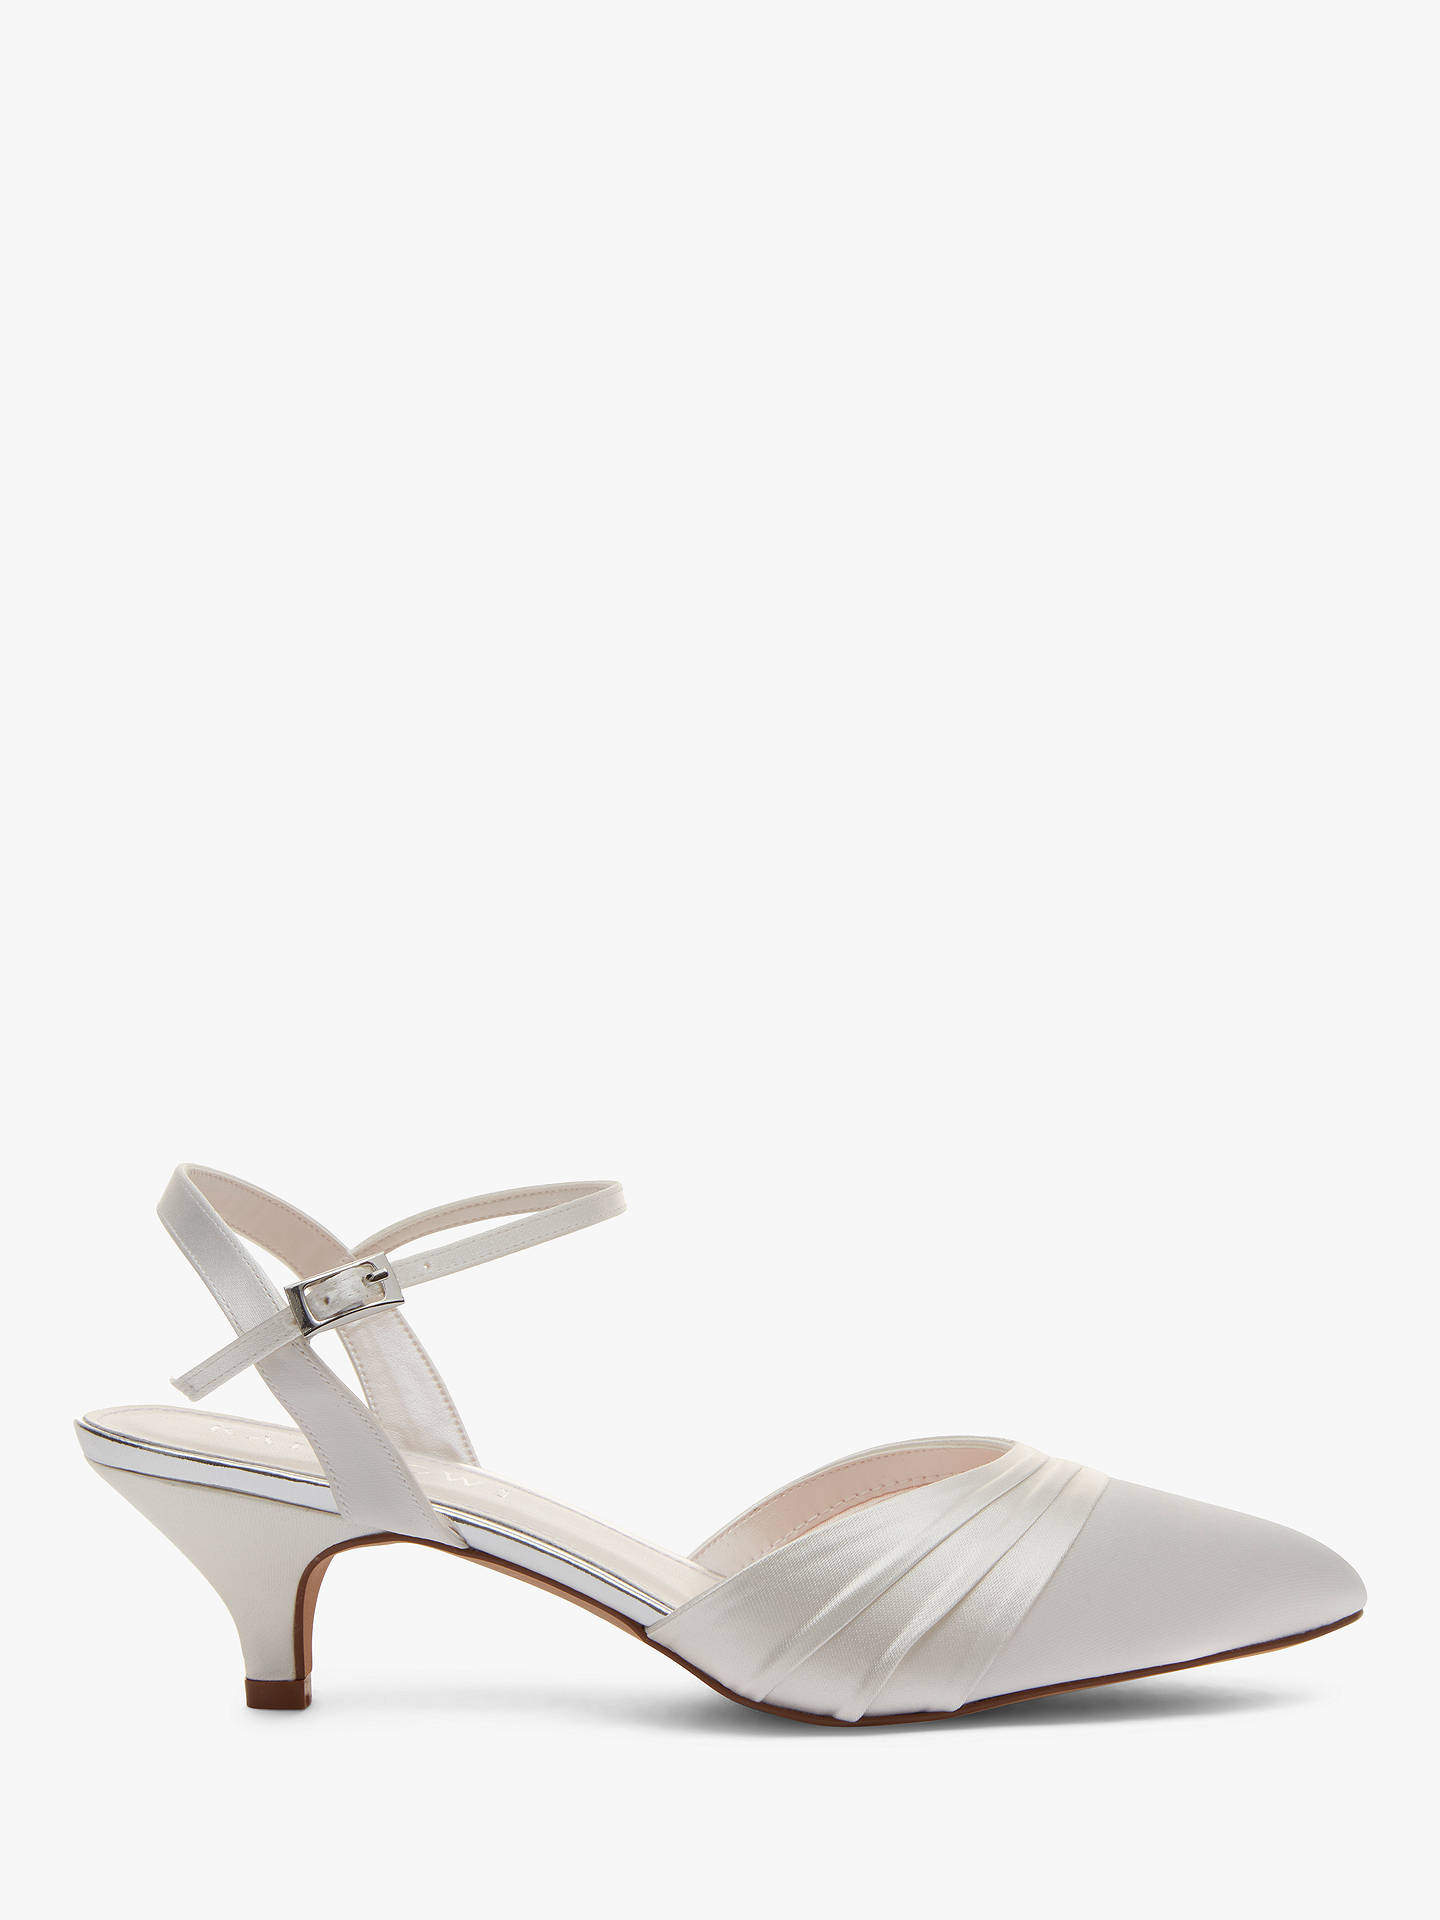 962ec4f0d8 Buy Rainbow Club Julie Kitten Heel Court Shoes, Ivory Satin, 3 Online at  johnlewis ...